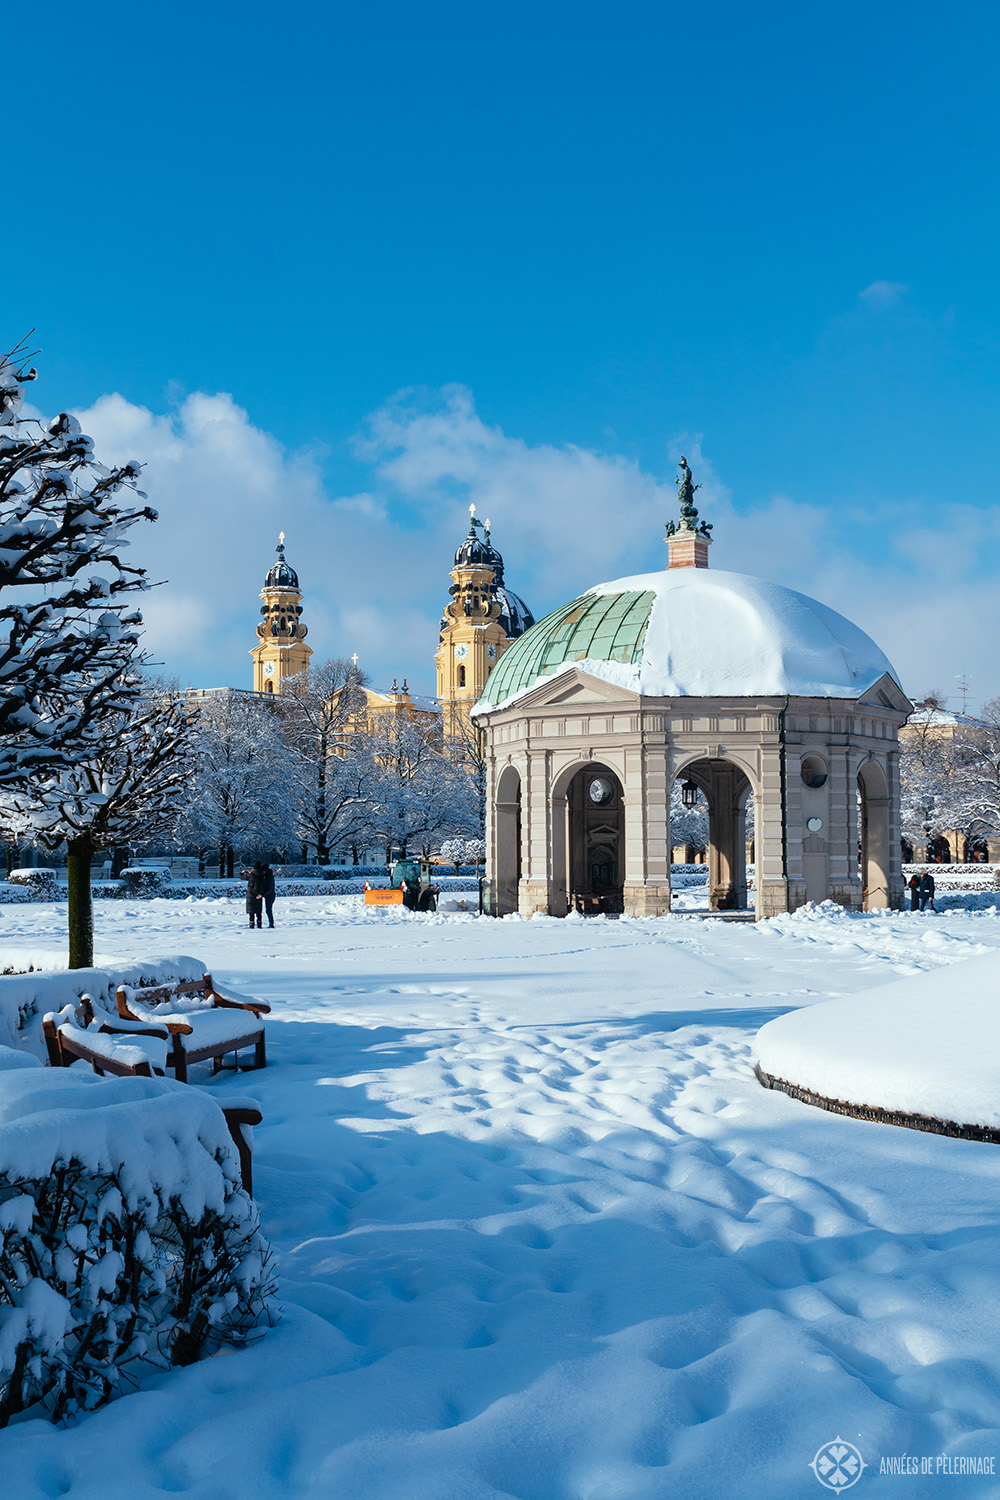 The Hofgarten Munich in Winter with the Theatinerkirche in the background